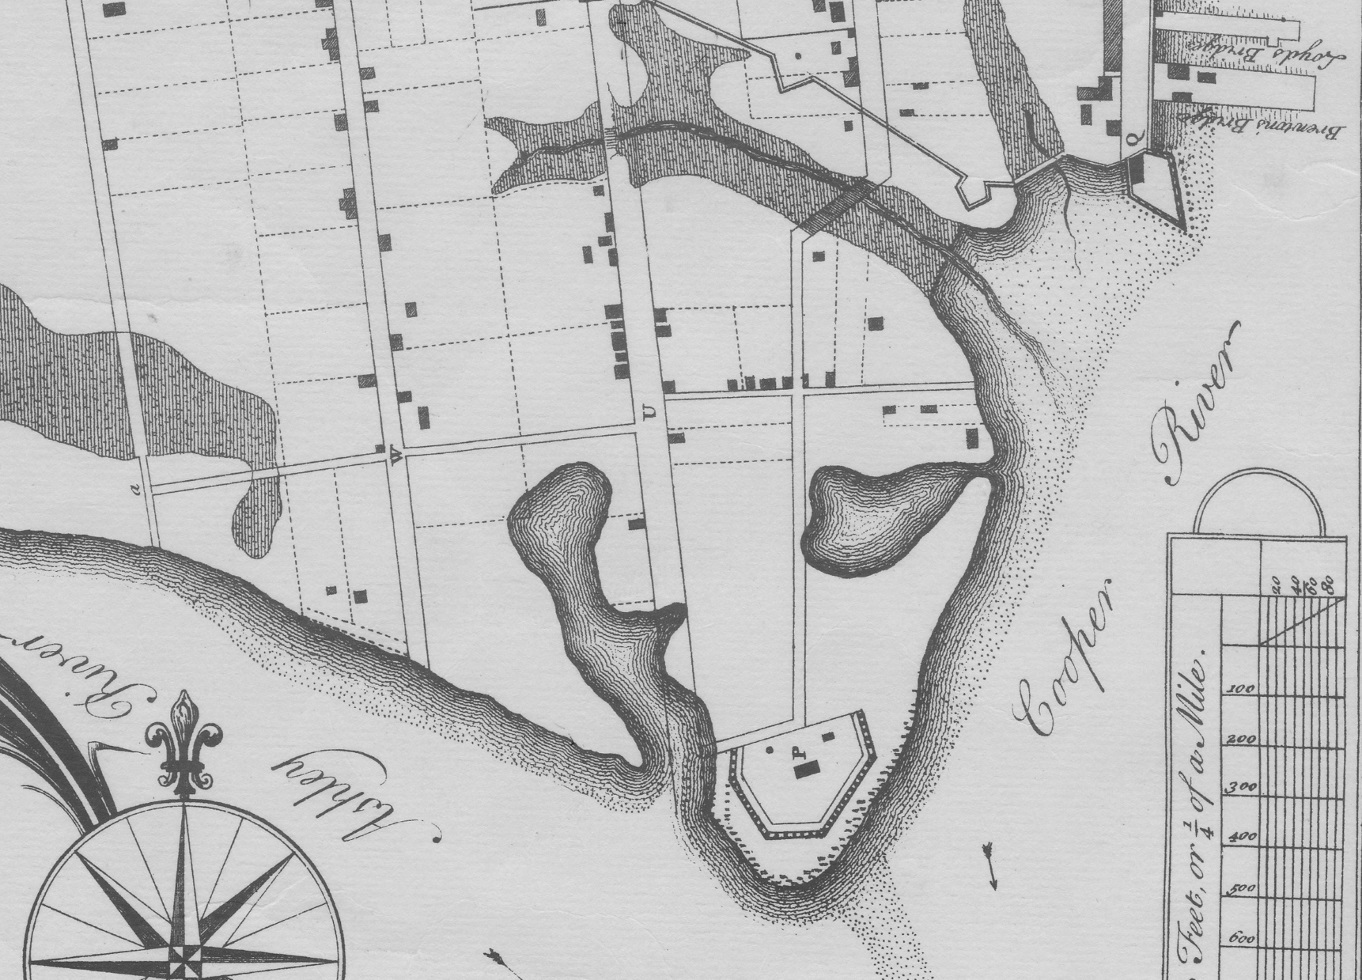 """Detail of White Point from B. Roberts's 1739 Ichnography of Charles Town. Letter """"Q"""" is Granville Bastion (top right), while letter """"P"""" is Broughton's Battery (bottom center)."""